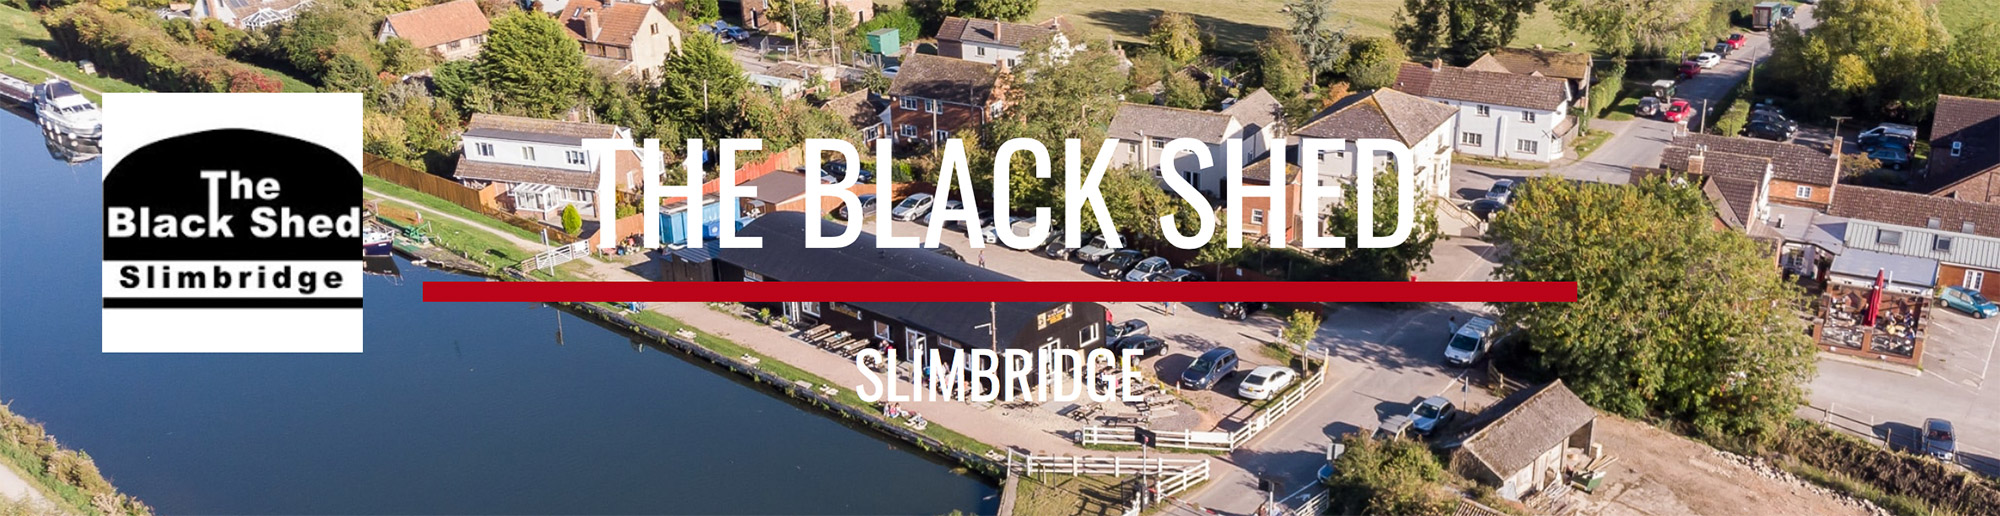 the-black-shed-cafe-slimbridge-gloucestershire-for-paddle-boarding-sup-session-and-in-stroud-2000pxl.jpg